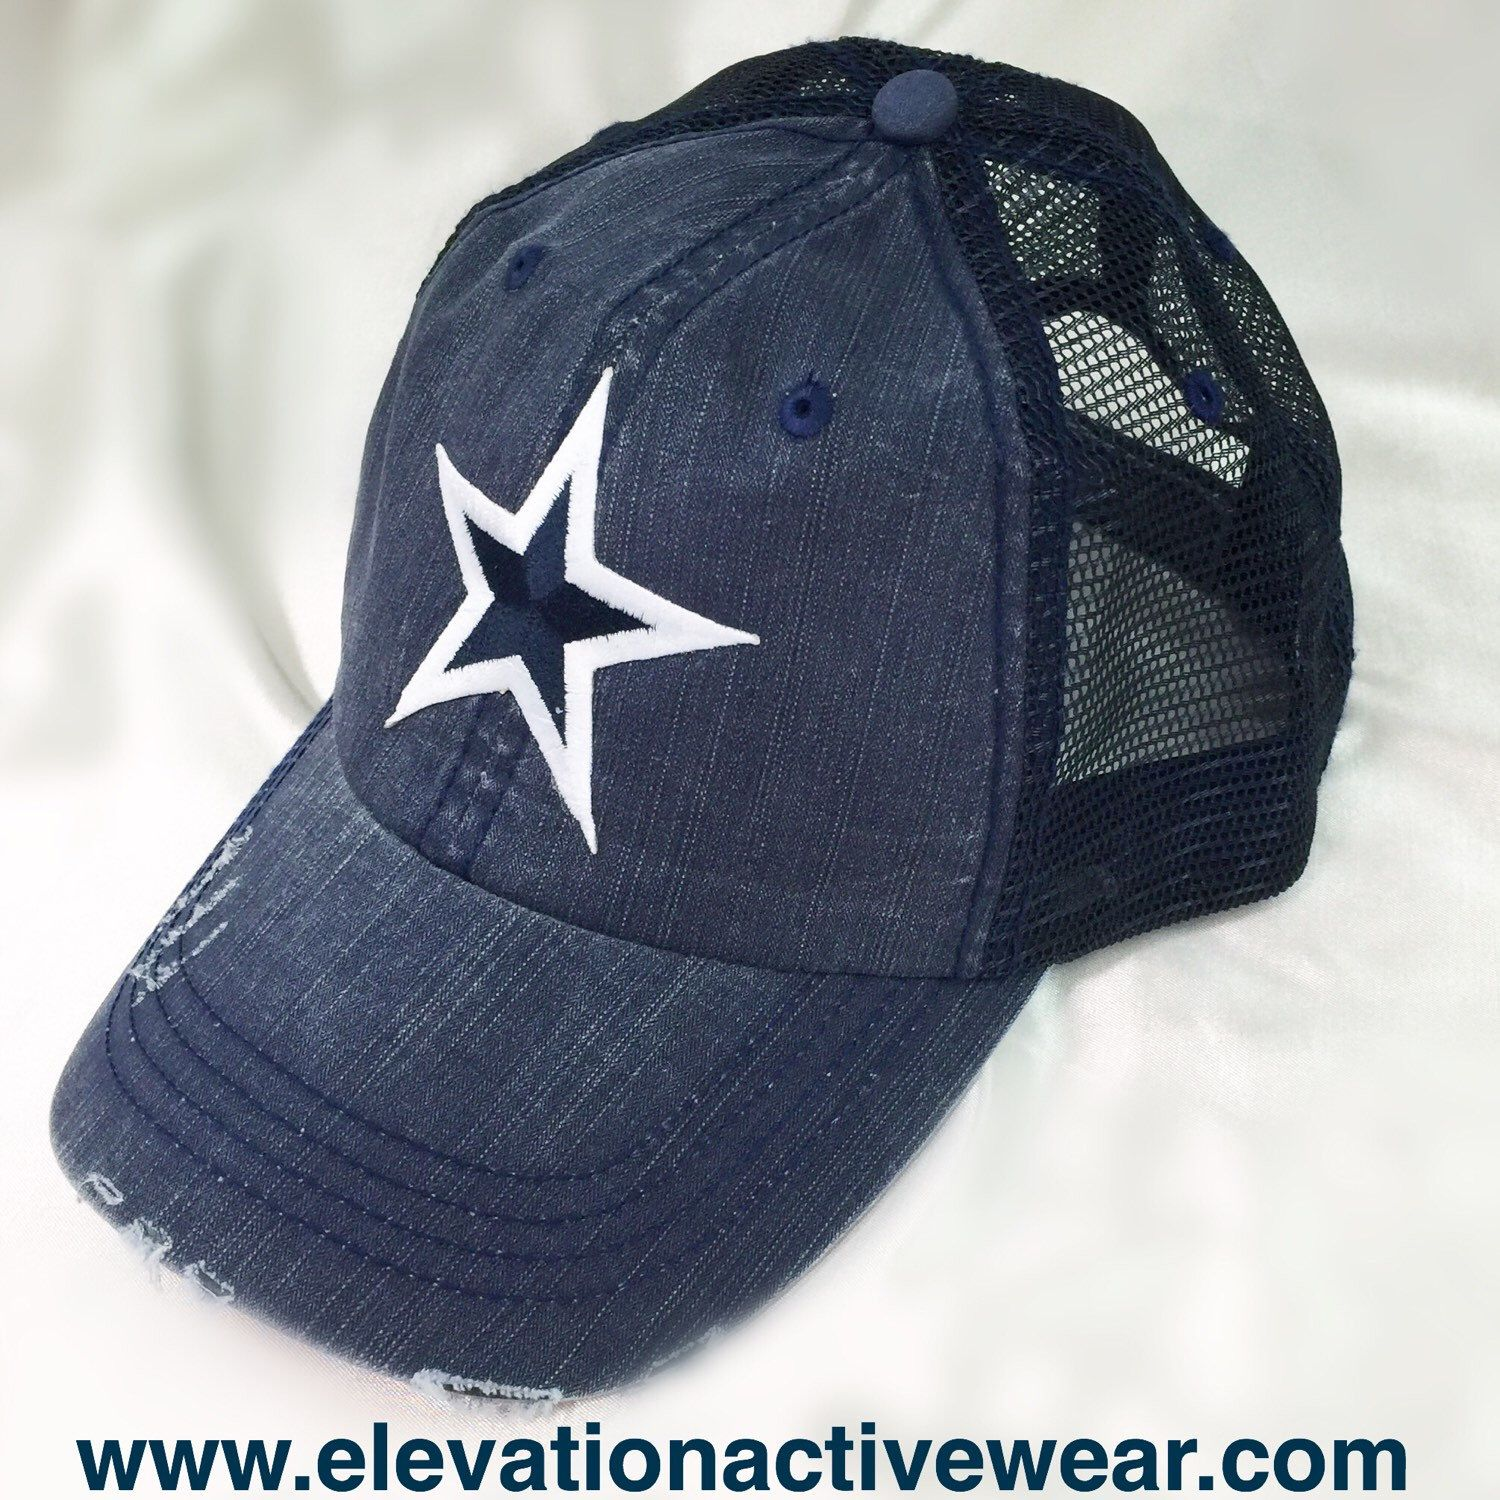 I originally designed this Dallas Cowboys Trucker for our male customers, and it is now our best selling Cowboys cap for girls and boys.   Check it out by clicking this link.  https://www.etsy.com/listing/256777799/dallas-cowboys-trucker-no-bling-blue